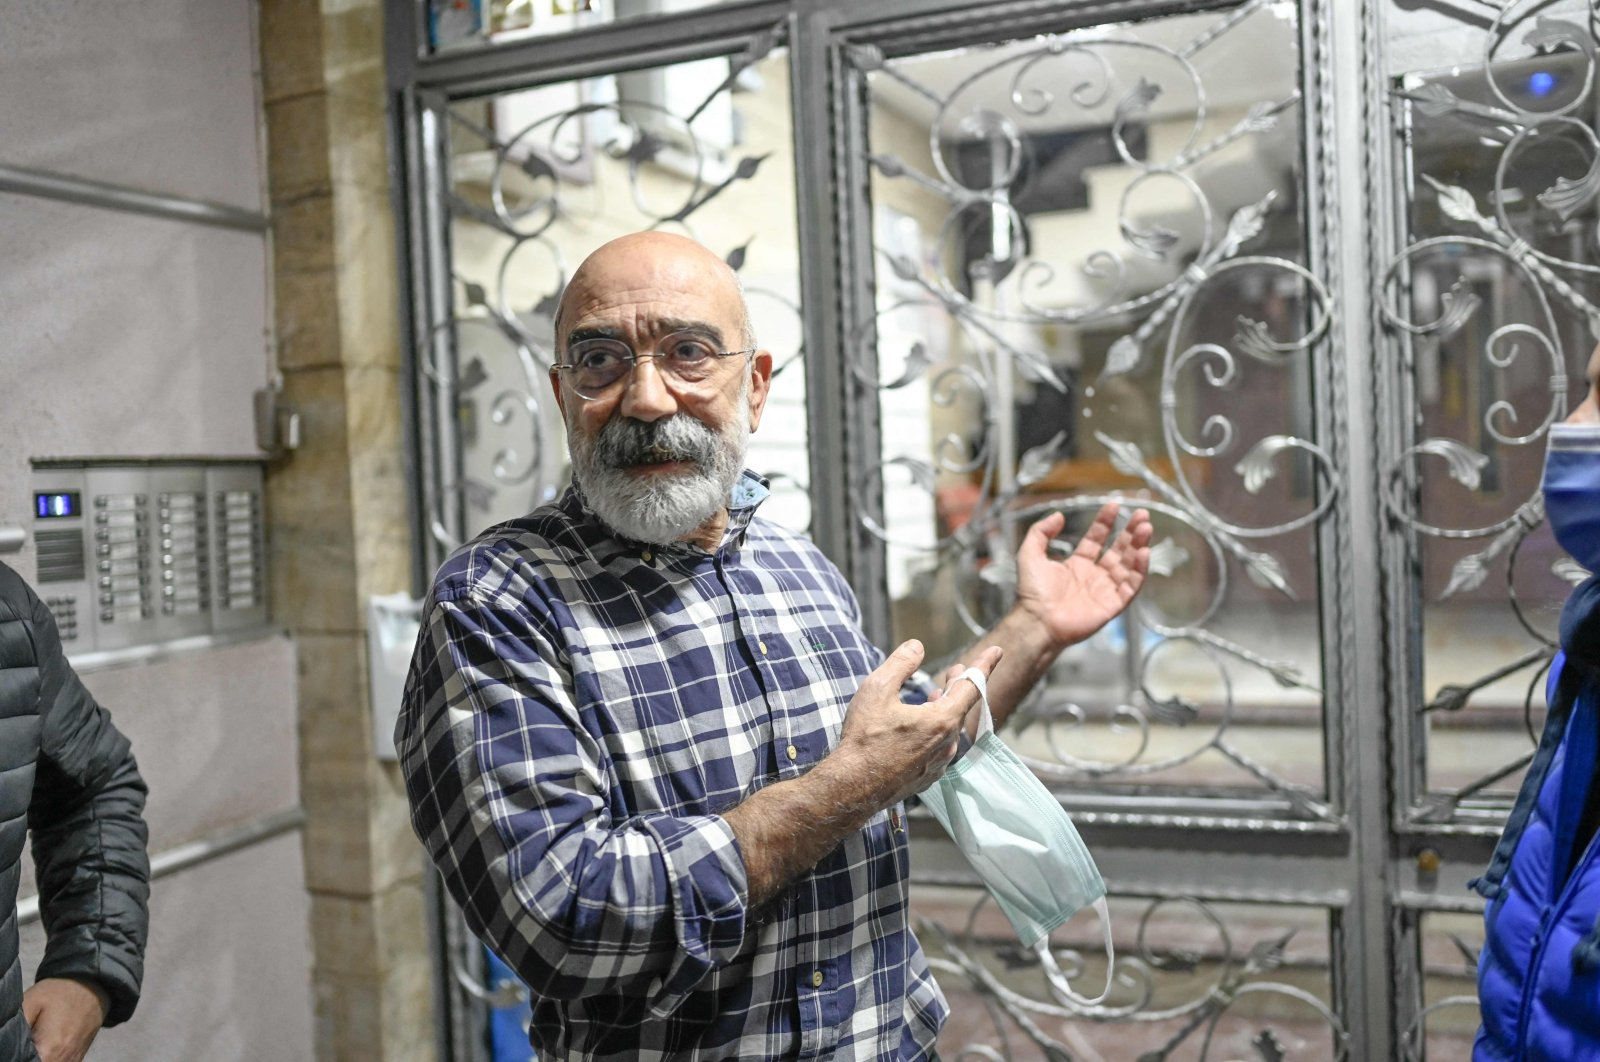 FETÖ-linked Taraf daily's former editor-in-chief Ahmet Altan poses for Agence France-Presse (AFP) at his home minutes after he arrived following his release from jail, in Istanbul's Kadiköy neighborhood, Turkey, April 14, 2021. (AFP Photo)